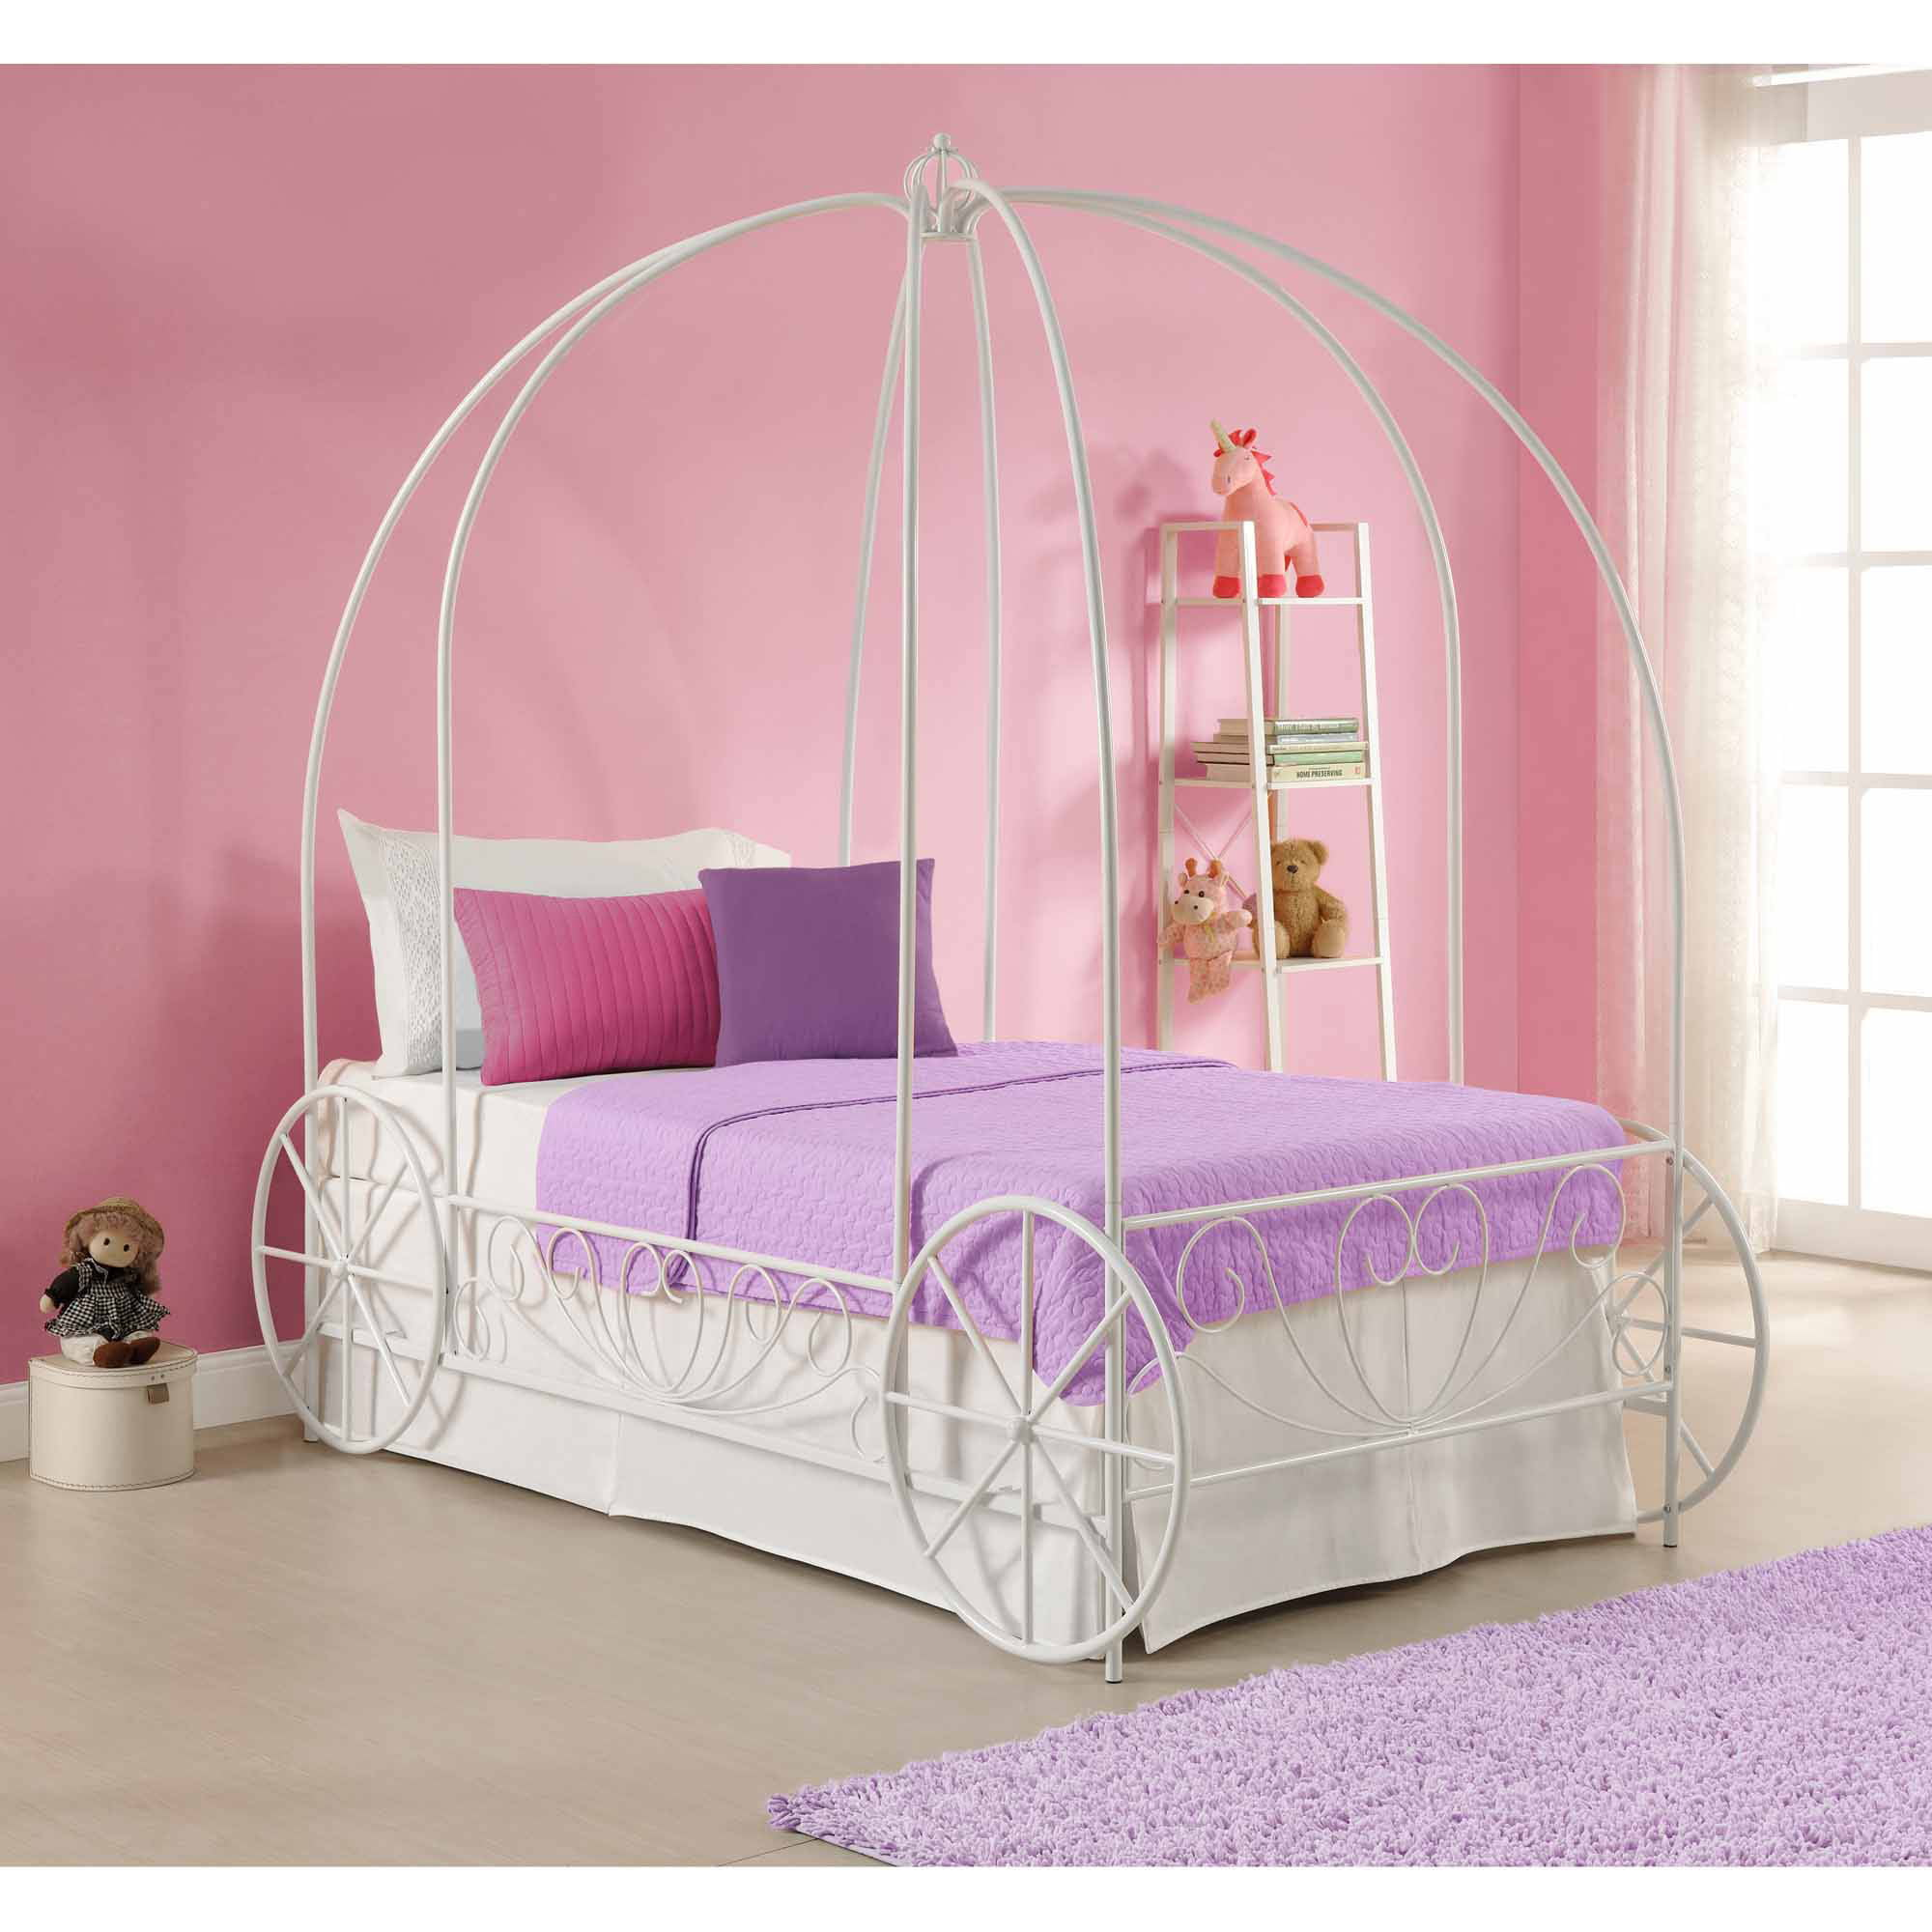 Dream Canopy for Girls Princess Bedroom Fits Twin or Full Size Bed ...